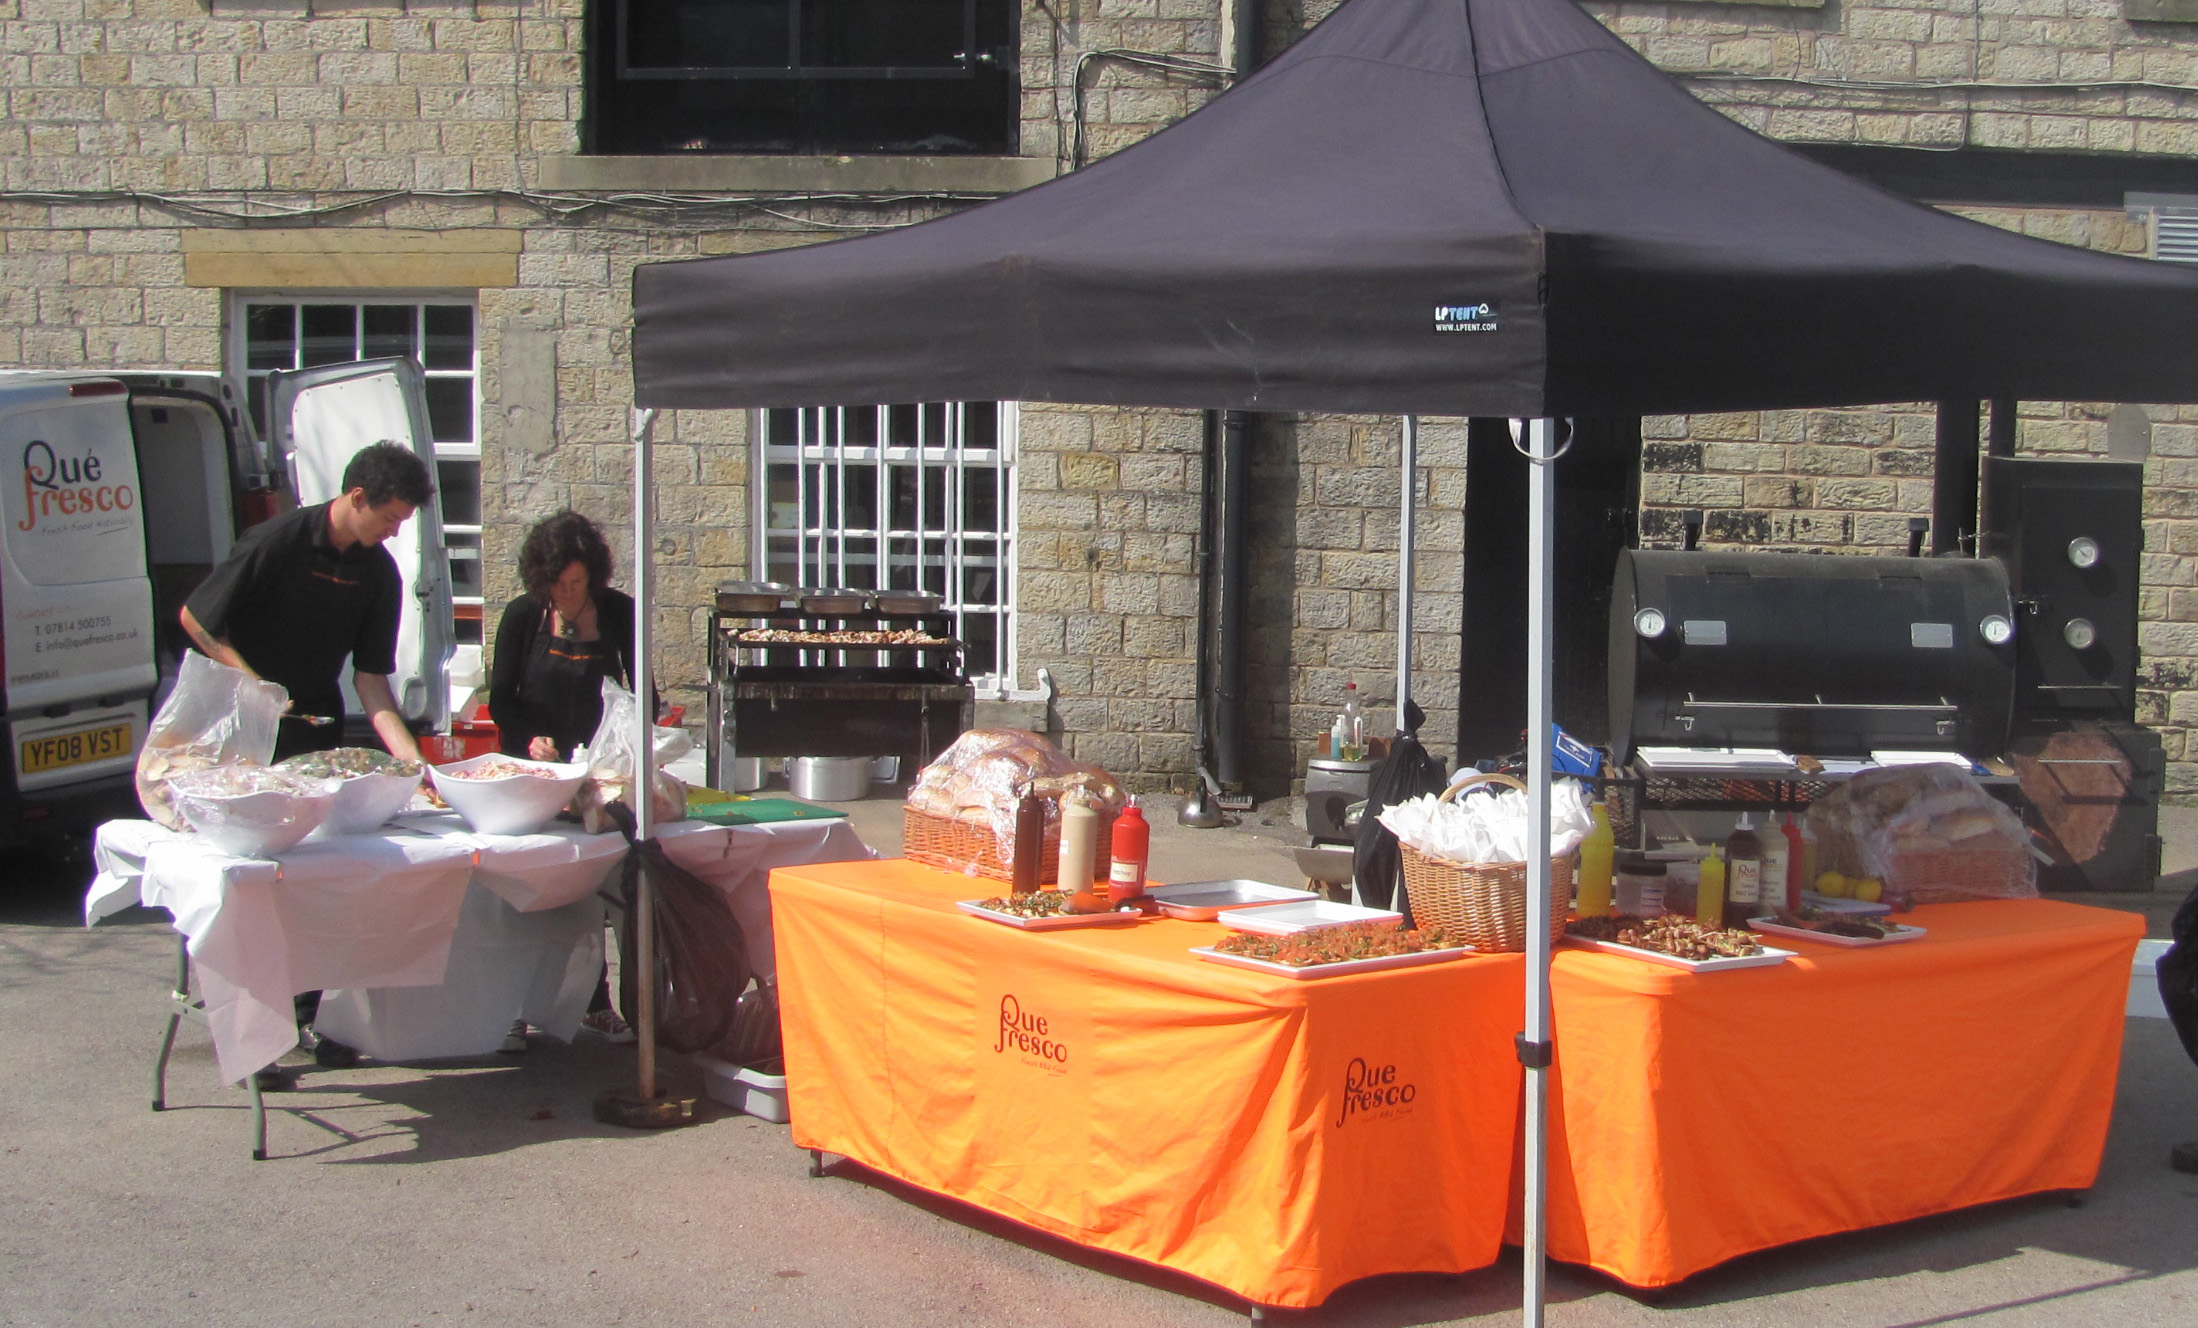 The BBQ Catering Lancashire set up